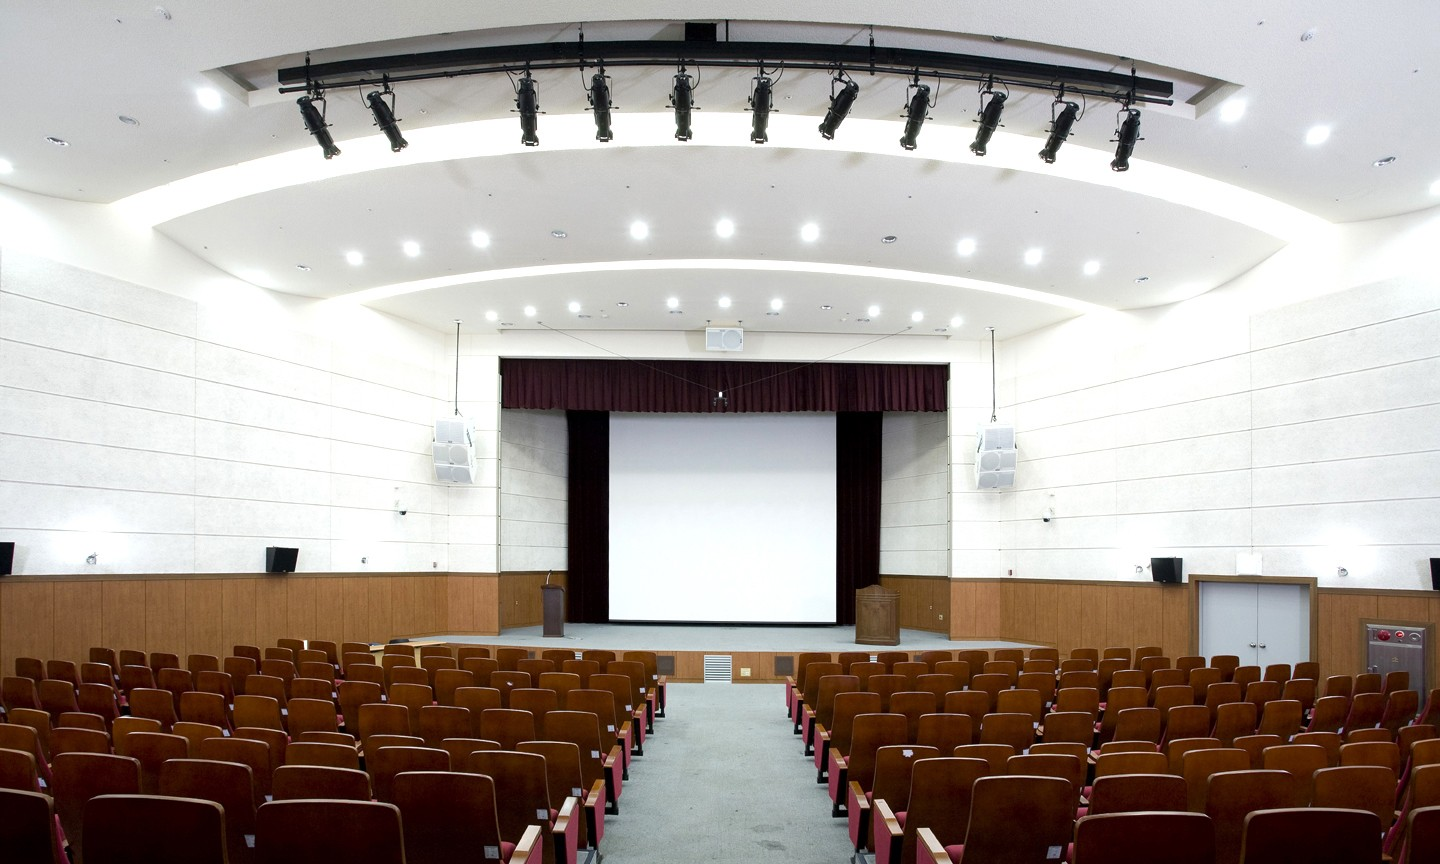 Wood Wool Acoustic Panels In Auditorium